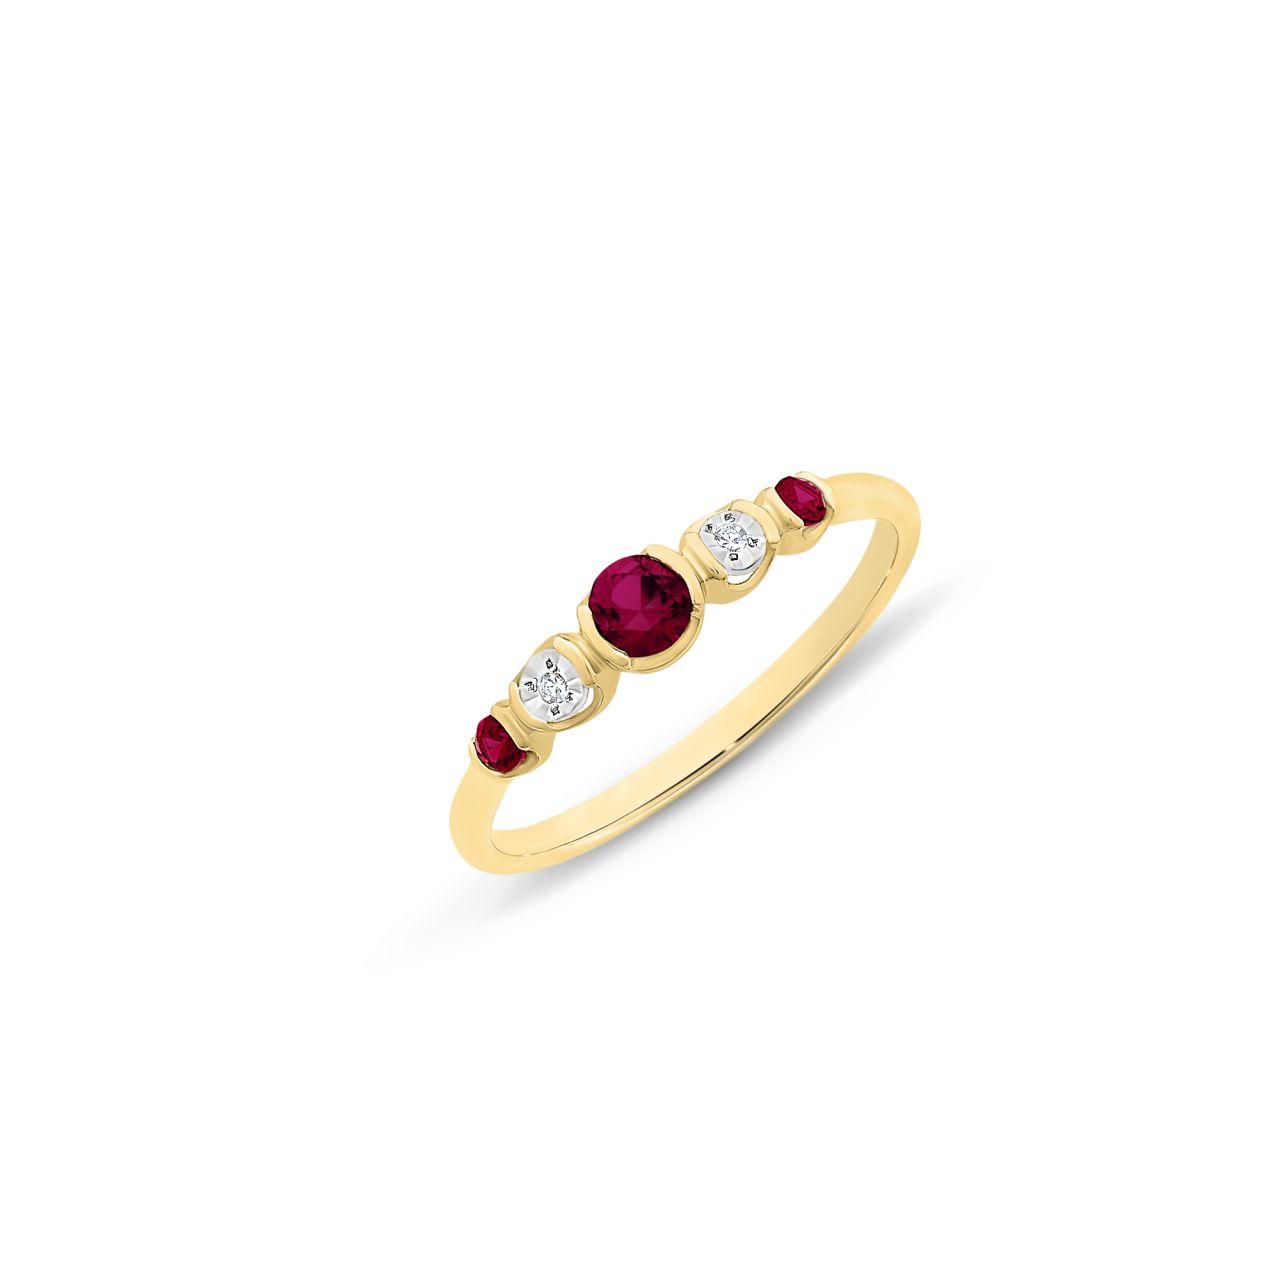 9CT YG CR RUBY & DIAMOND RING